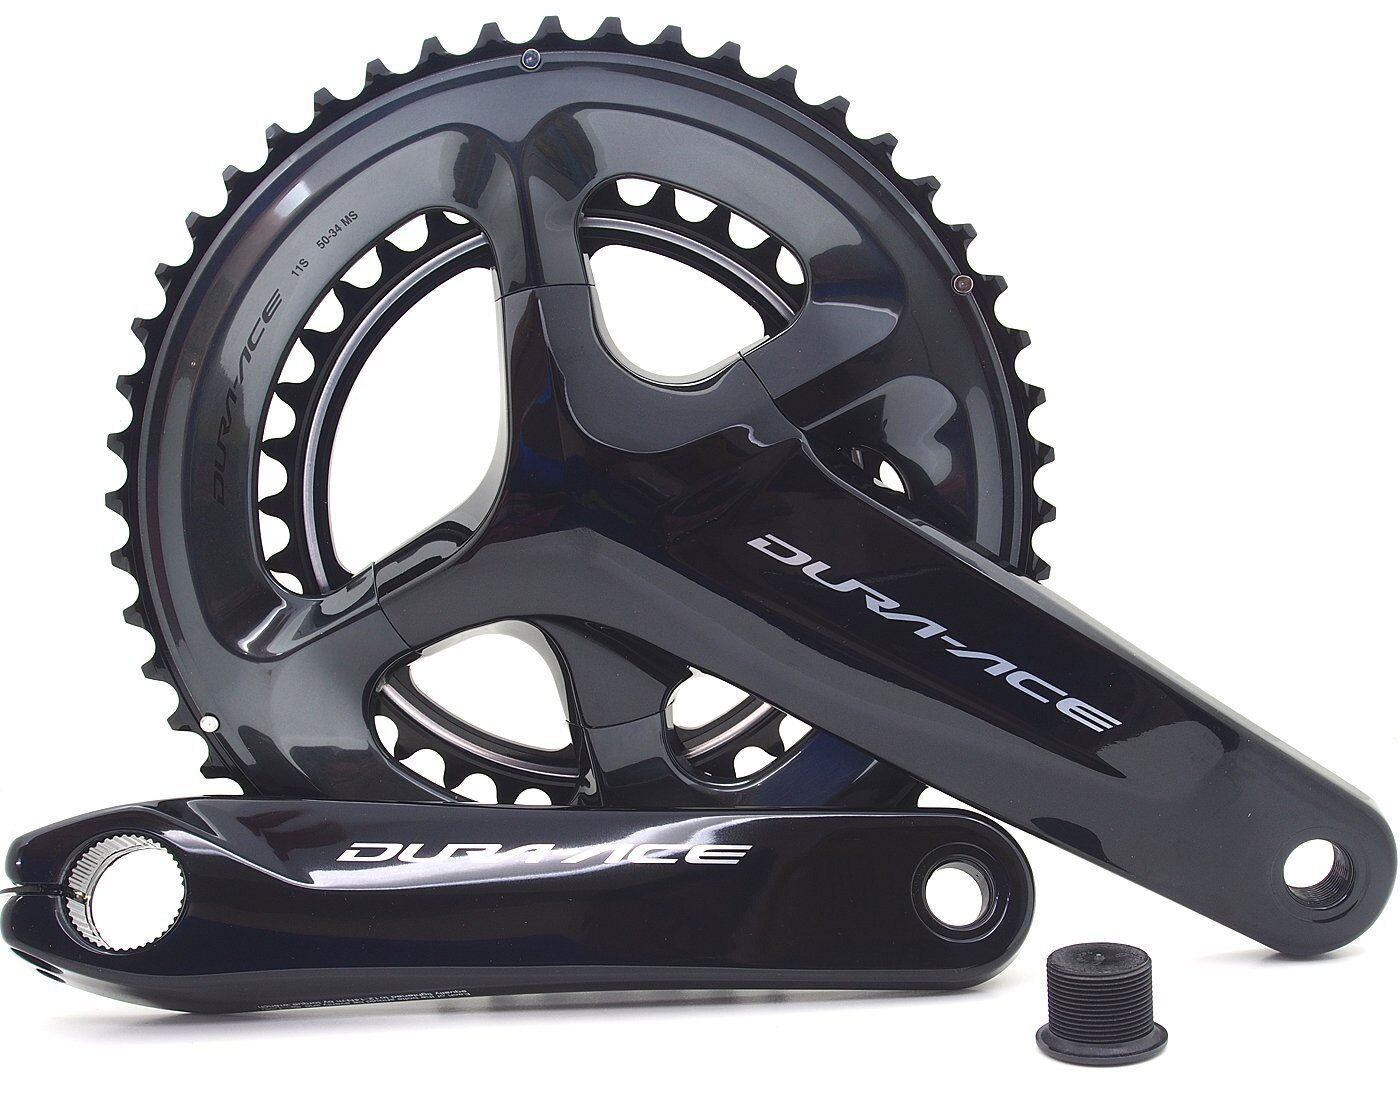 Shimano Dura Ace FC-R9100 50-34T Compact 2x11 Speed CrankSet 172.5mm, New In box